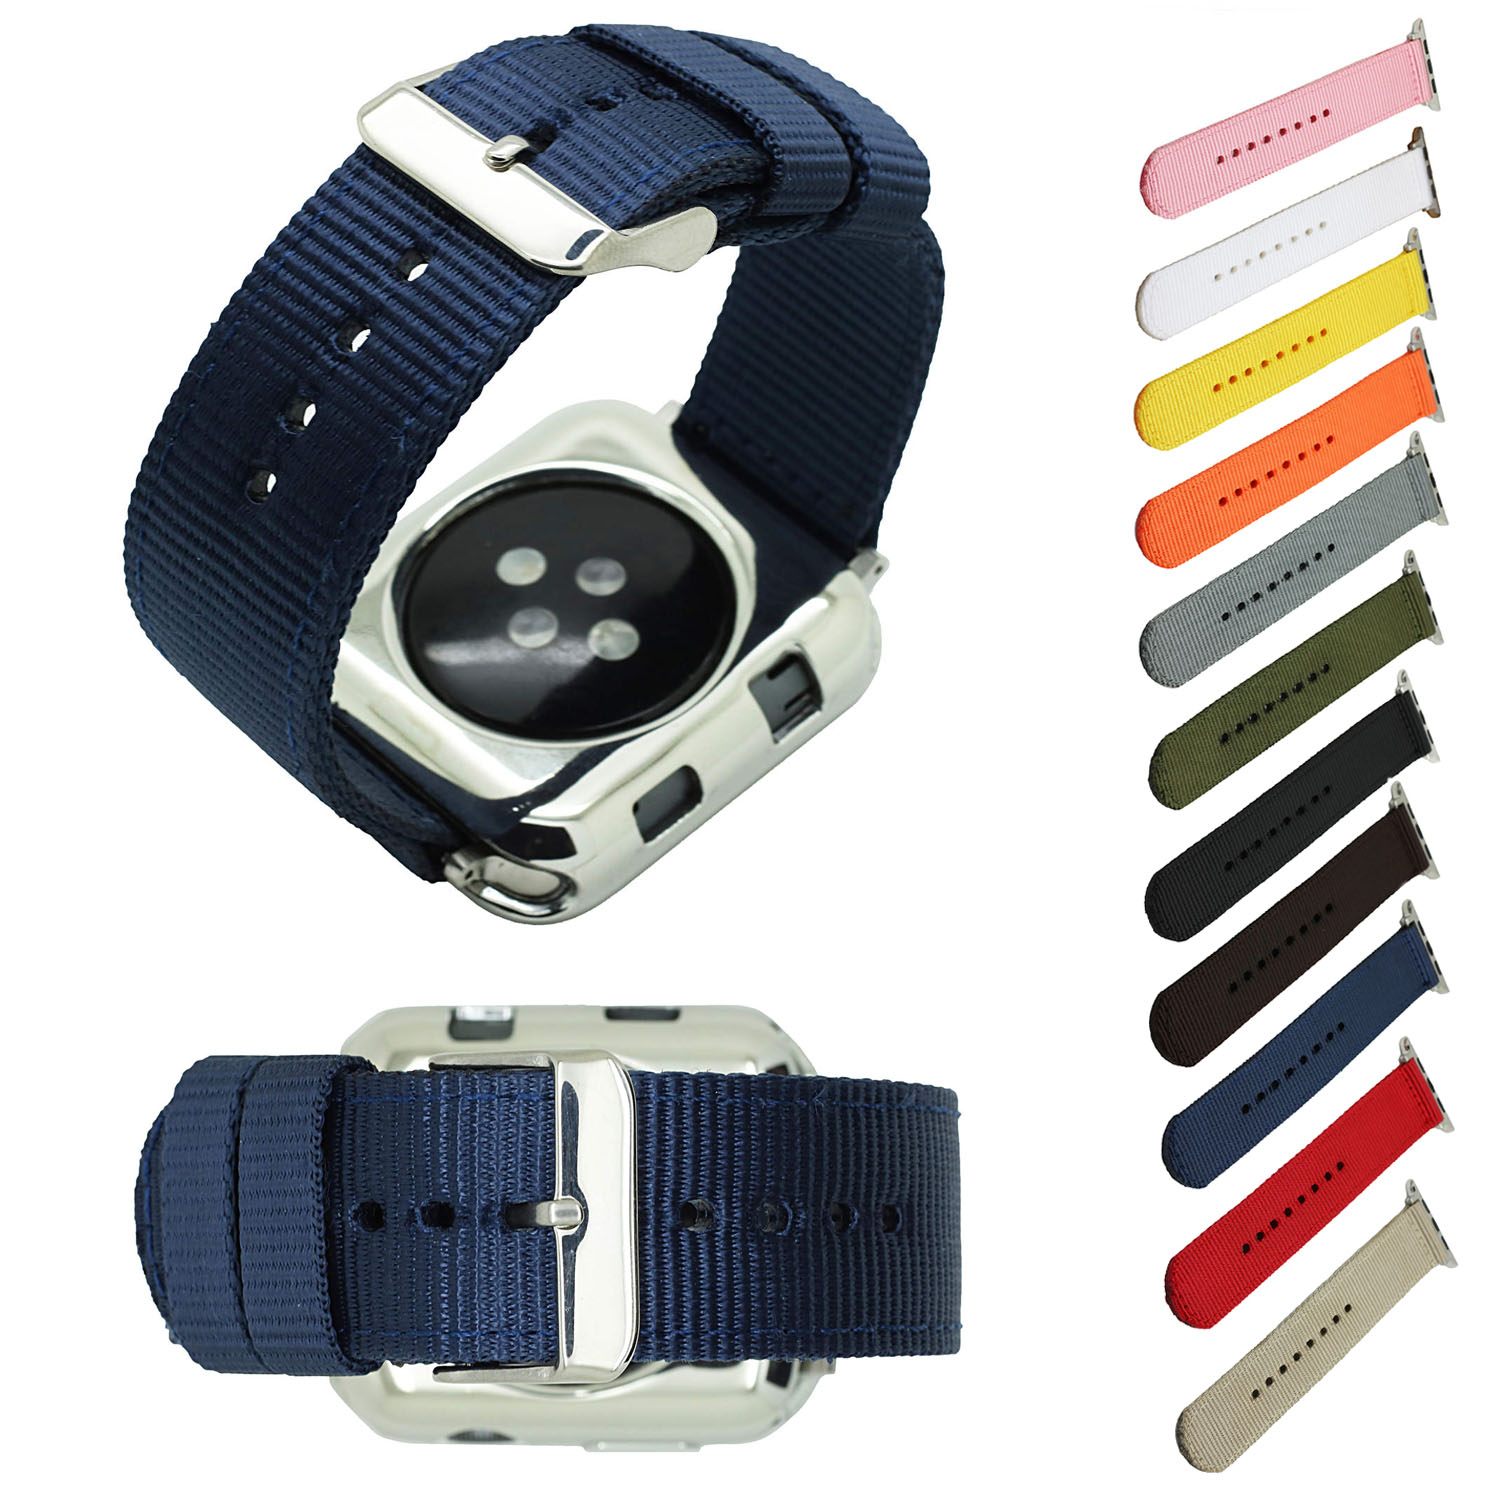 Sport Colorful Nylon Strap Band for Apple Watch 3 42mm 38mm Wrist Bracelet Belt Fabric Nylon Band for iWatch 1/2/3 sport loop for apple watch band case 42mm 38mm nylon watch strap bracelet with metal frame protector case cover for iwatch 3 2 1